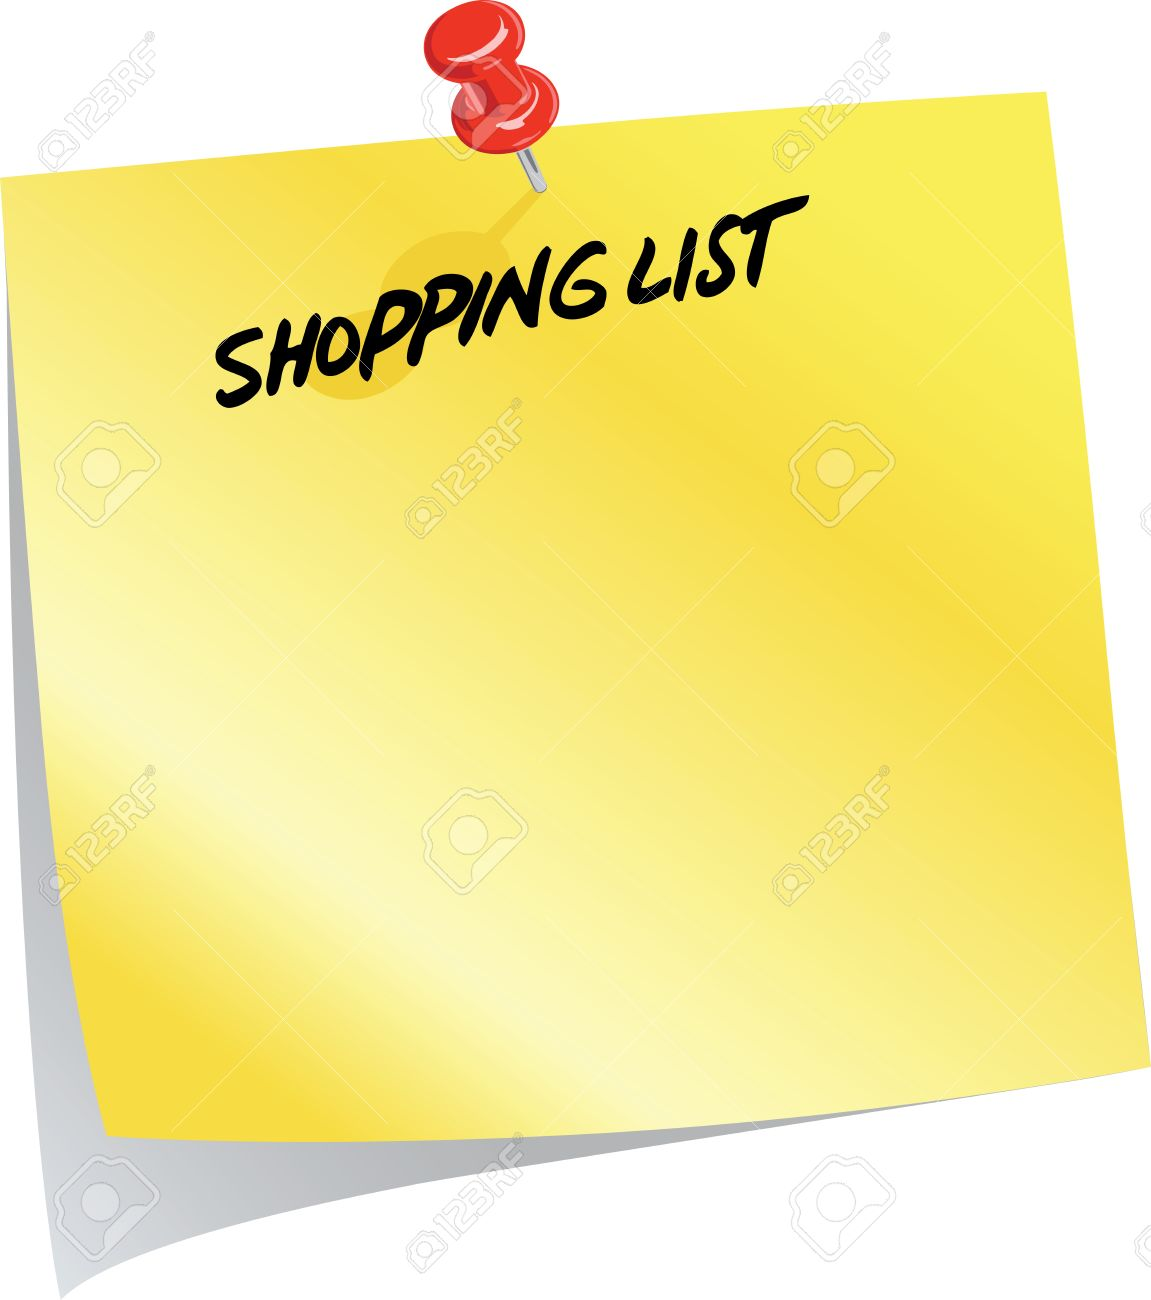 Image result for Clip Art Shopping List